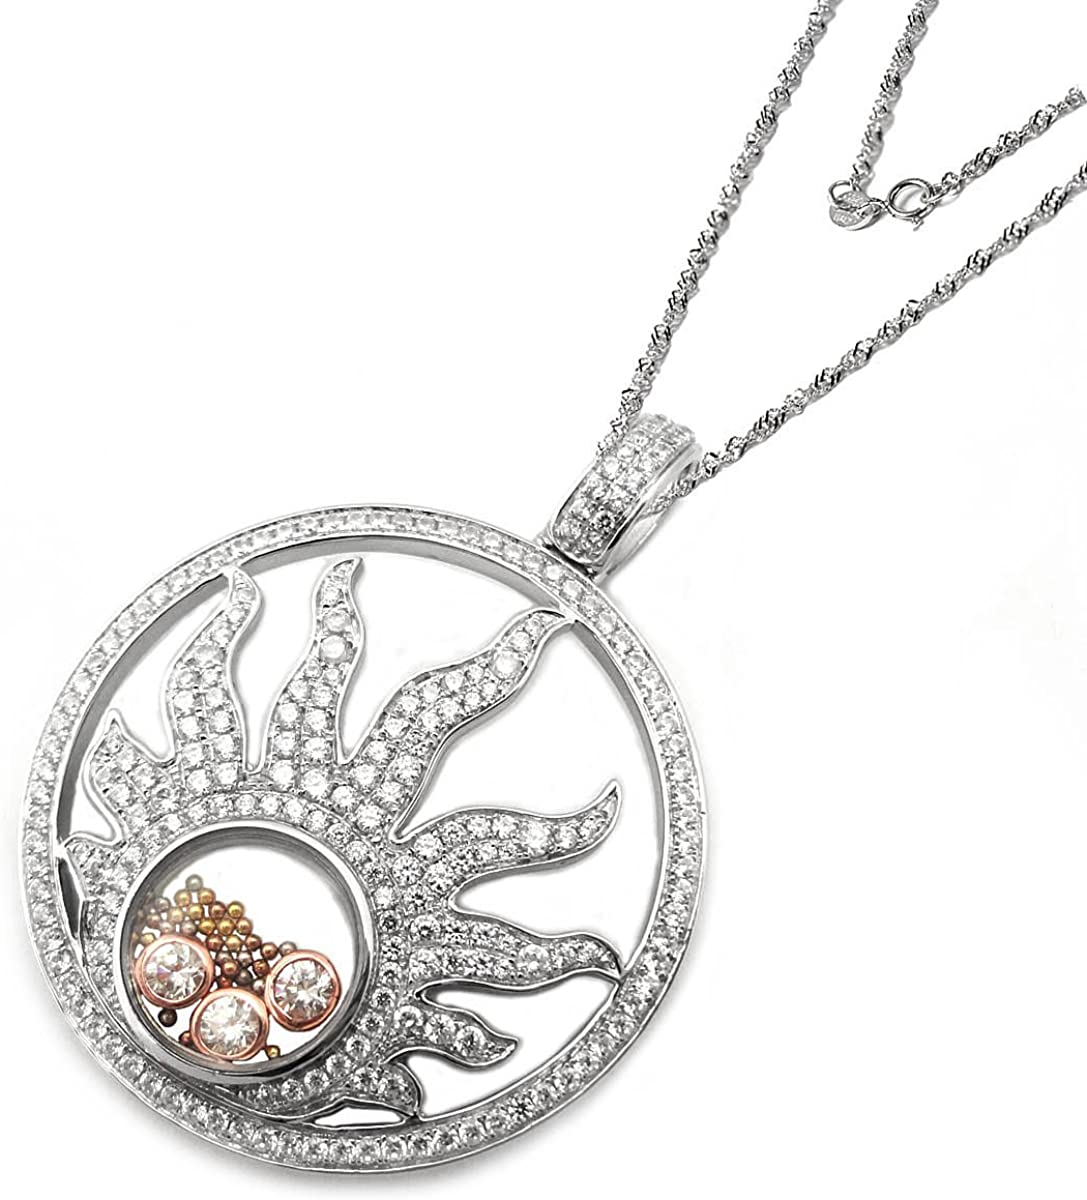 De Buman Two-tone Sterling Silver 6.37ctw Cubic Zirconia and Crystal Sun Pendant Necklace 24